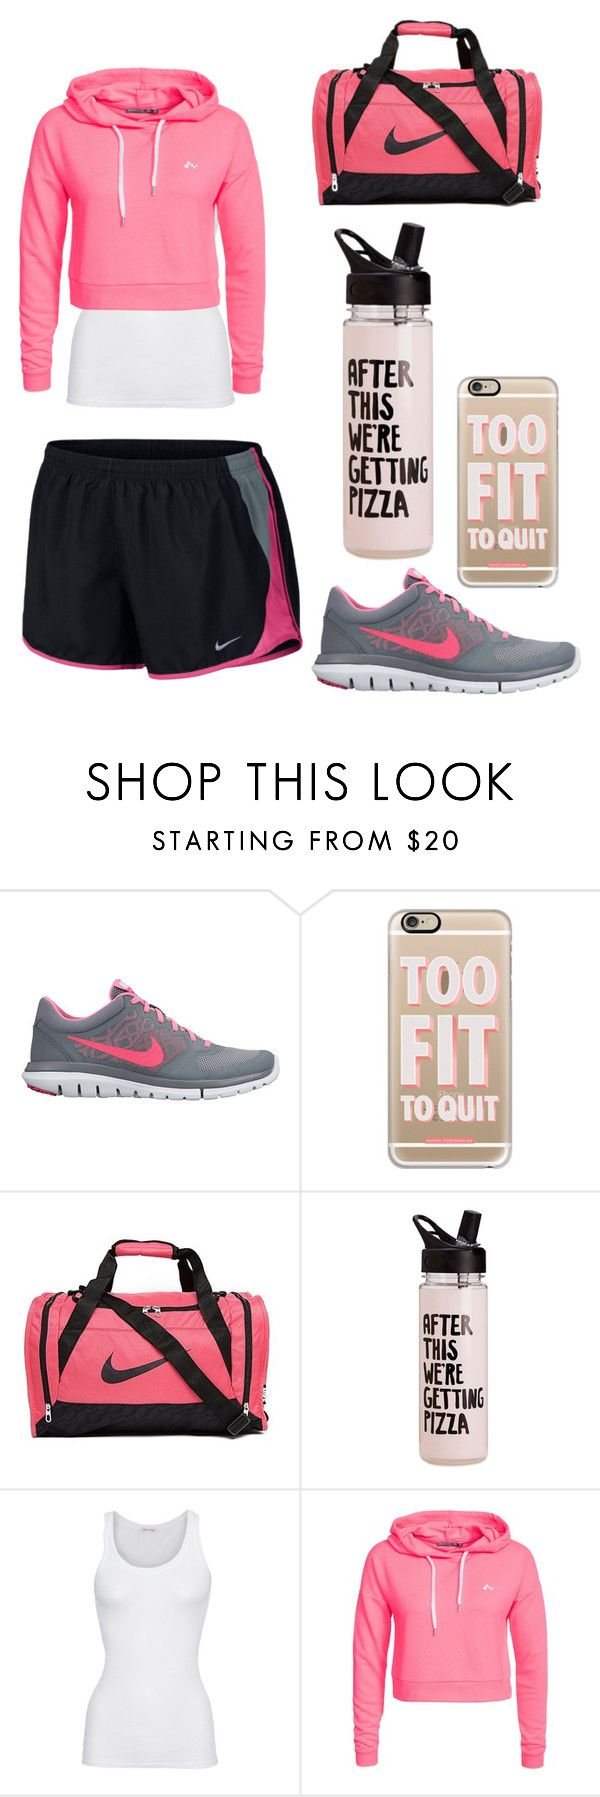 """Workout"" by shakespeares-rose ❤ liked on Polyvore featuring NIKE, Casetify, American Vintage and Only Play"